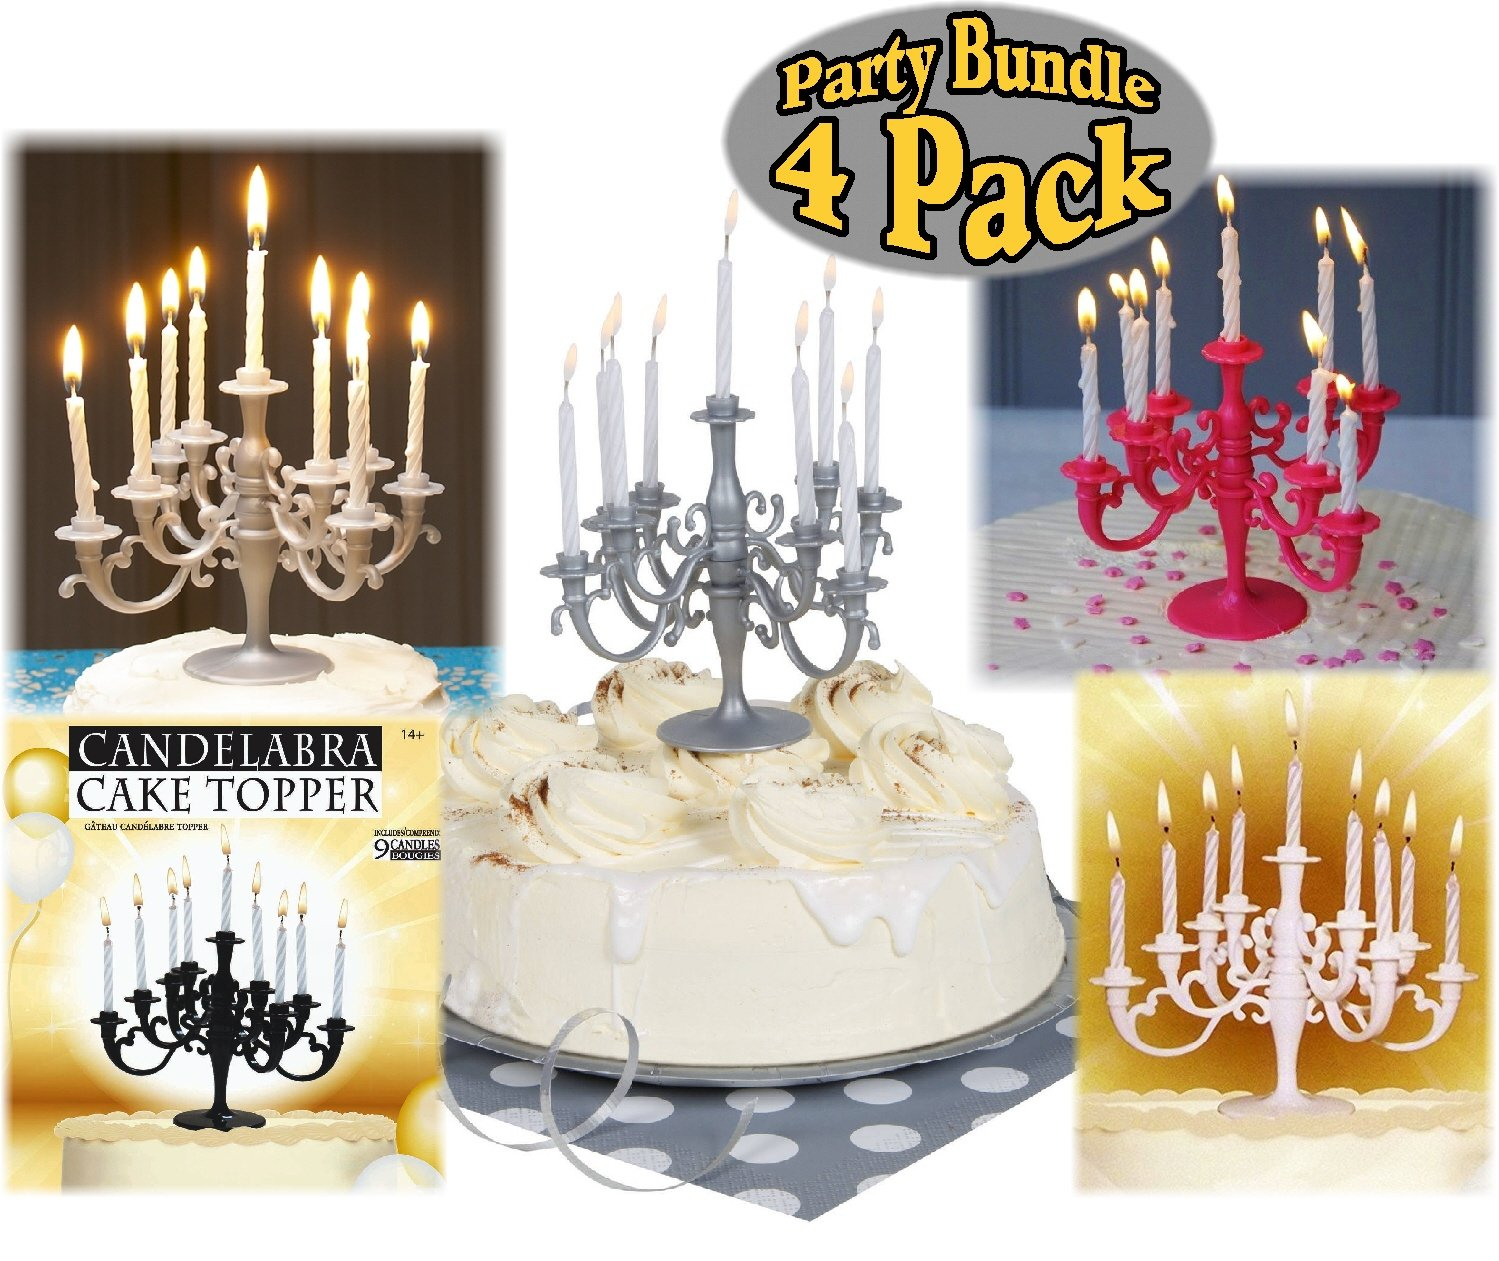 Amazon Candelabra Cake Topper Candle Holders Silver Black White Pink Gift Set Party Bundle With Exclusive Mattys Toy Stop Storage Bag